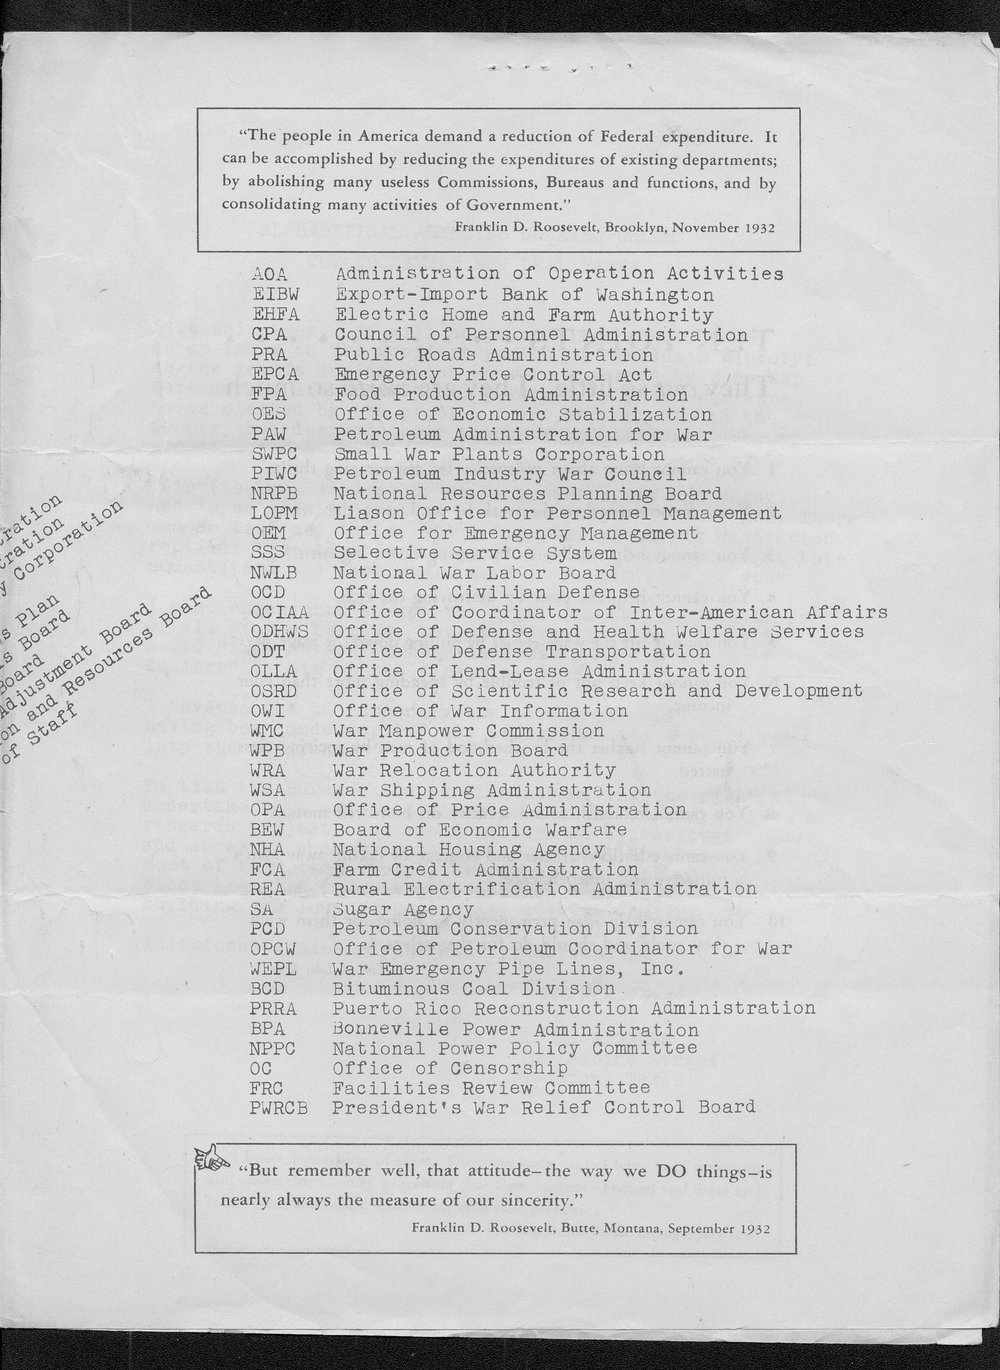 Alphabetical agencies created under the Roosevelt New Deal Party - 3